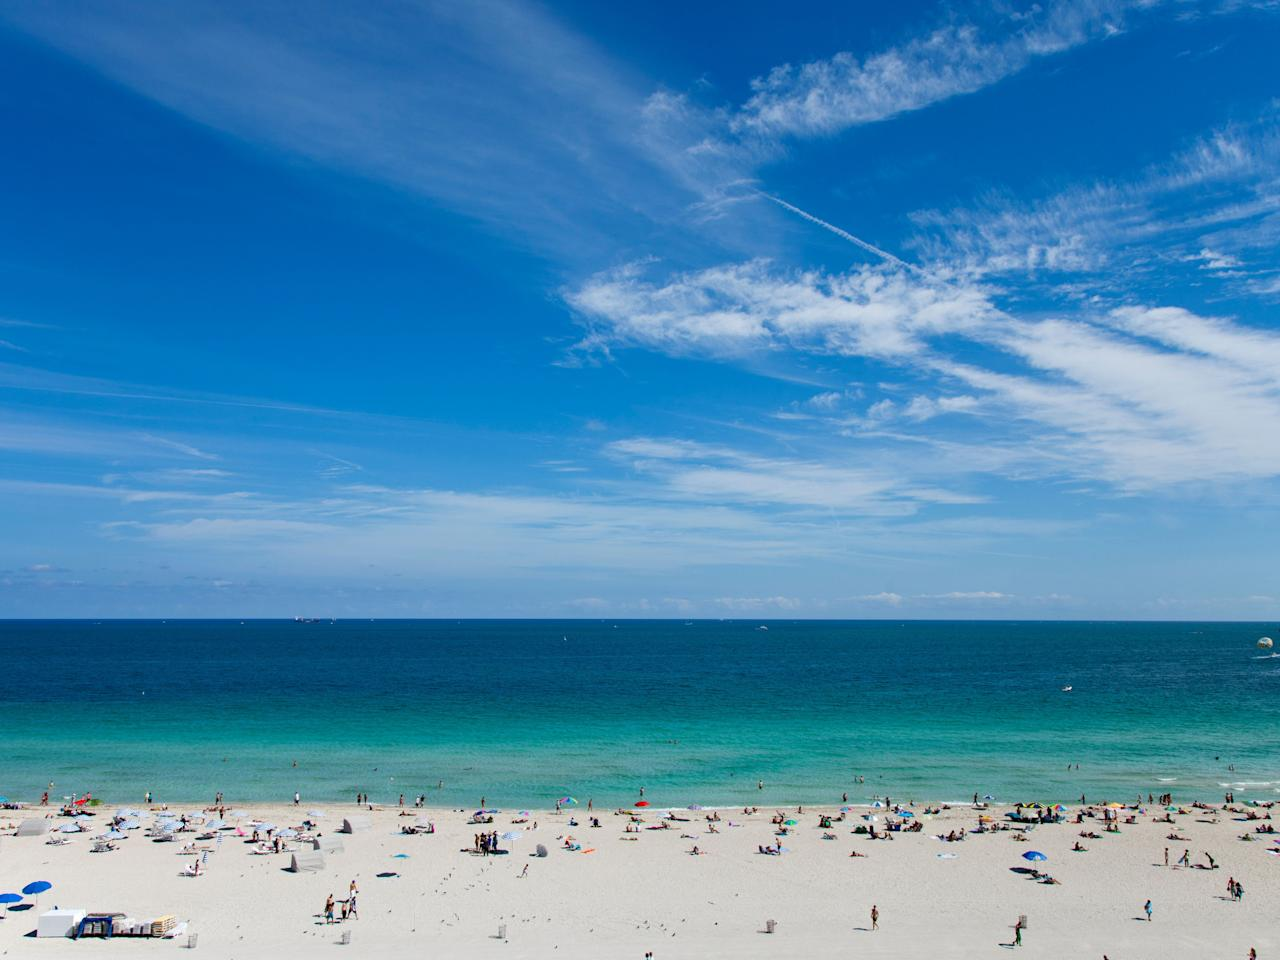 """<p>Beautiful people, flashy cars, skimpy bathing suits, Art Deco architecture: It's all here on the 2.2-mile white sand stretch that makes up Florida's most famous beach. The busiest—and most touristy—section runs parallel to Ocean Drive (between 5th and 15th Streets), so locals tend to hang around the quieter patches south of Fifth Street. Hotel beach clubs dominate the shoreline from 15th Street to 22nd Street, but rest assured, there's still plenty of space for anyone to throw down a towel.</p> <p><strong>Who it's best for:</strong> Those who enjoy a busy beach scene with plenty of eye candy</p> <p><strong>The vibe:</strong> Endless summer</p> <p><strong>Where to stay:</strong> Your best bet for a quality hotel in the heart of South Beach lies on 15th Street, at elegant beachfront boutique property, <a href=""""https://www.cntraveler.com/hotels/united-states/miami-beach/betsy-hotel?mbid=synd_yahoo_rss"""" target=""""_blank"""">The Betsy South Beach</a>.</p>"""